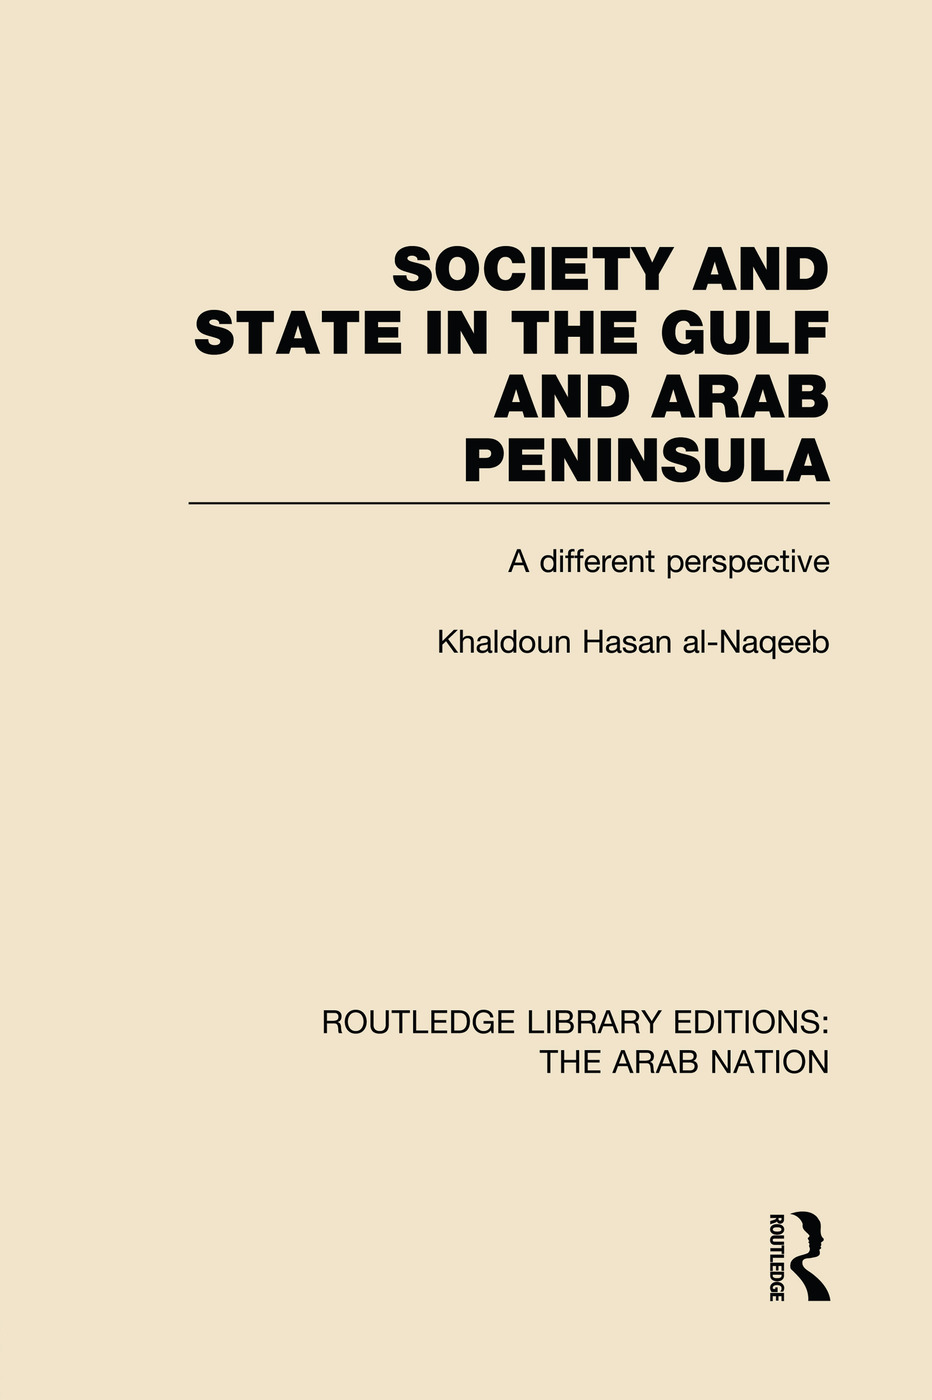 Society and State in the Gulf and Arab Peninsula (RLE: The Arab Nation): A Different Perspective book cover